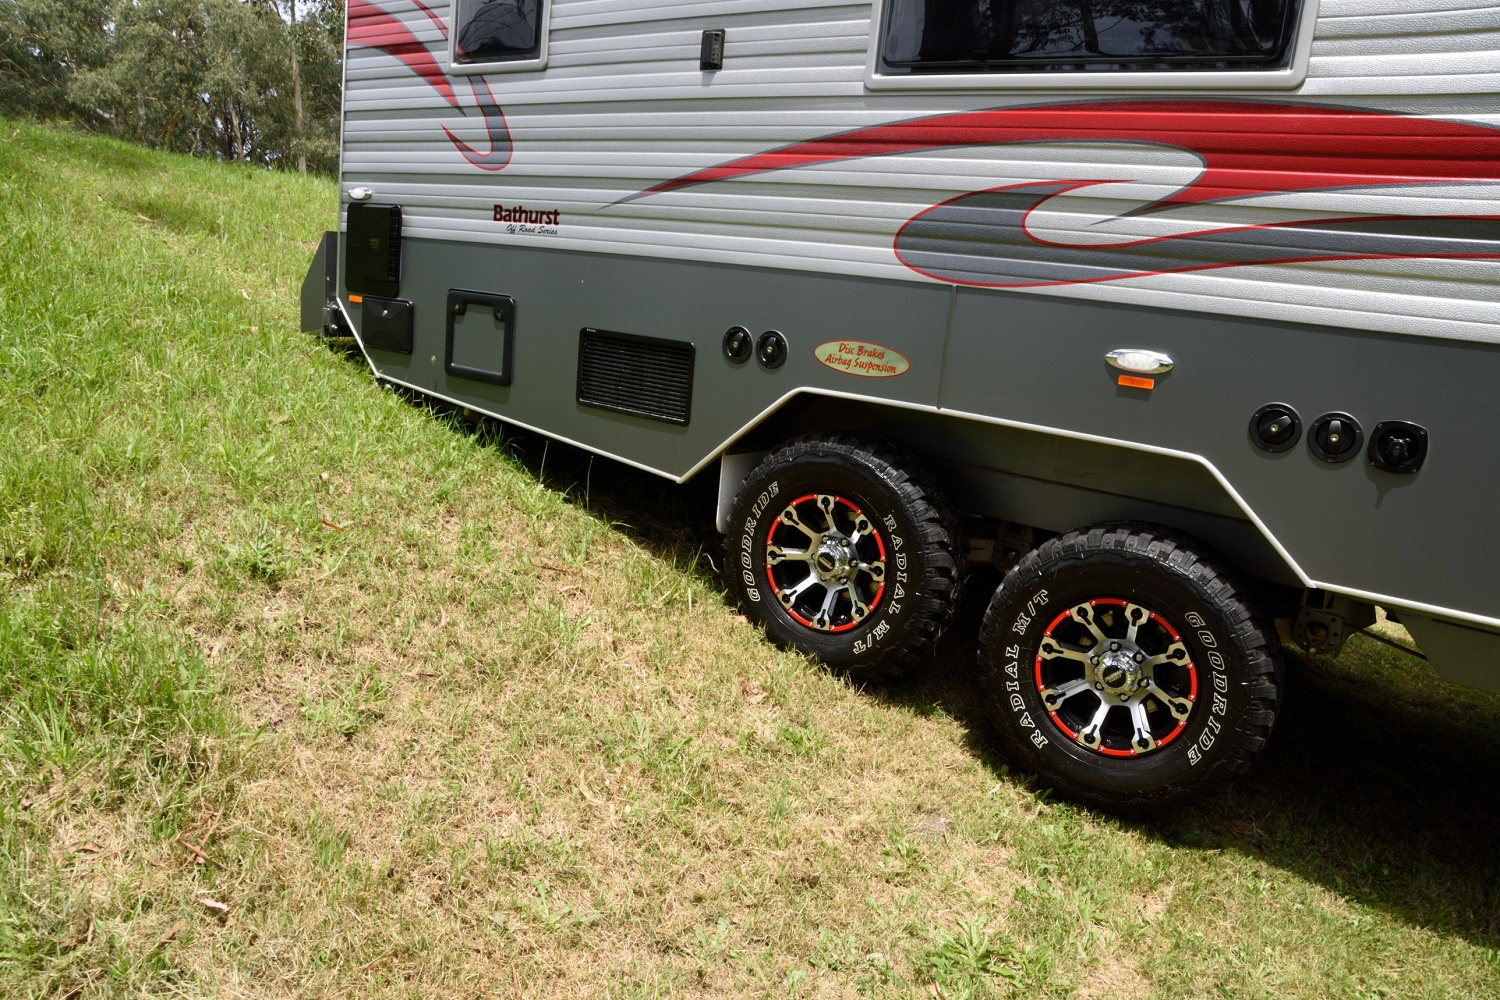 Off-road angles on Halen Vans Bathurst